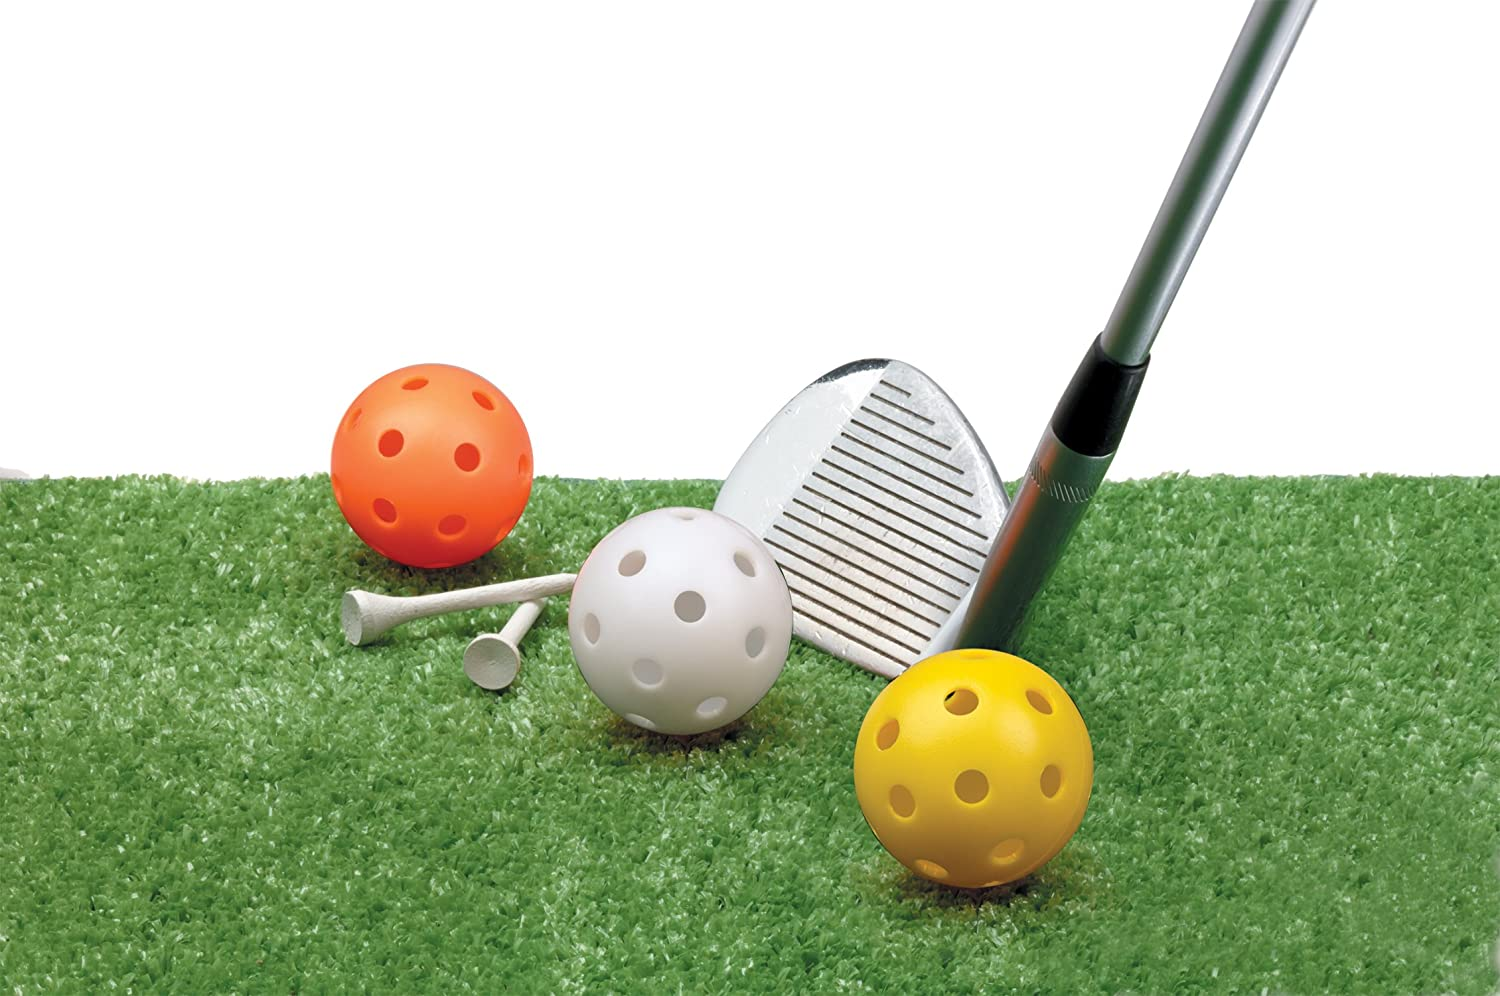 Jef World of Golf Gifts and Gallery, Inc. Golf Practice Balls (Multi Color, Includes 12 Balls)